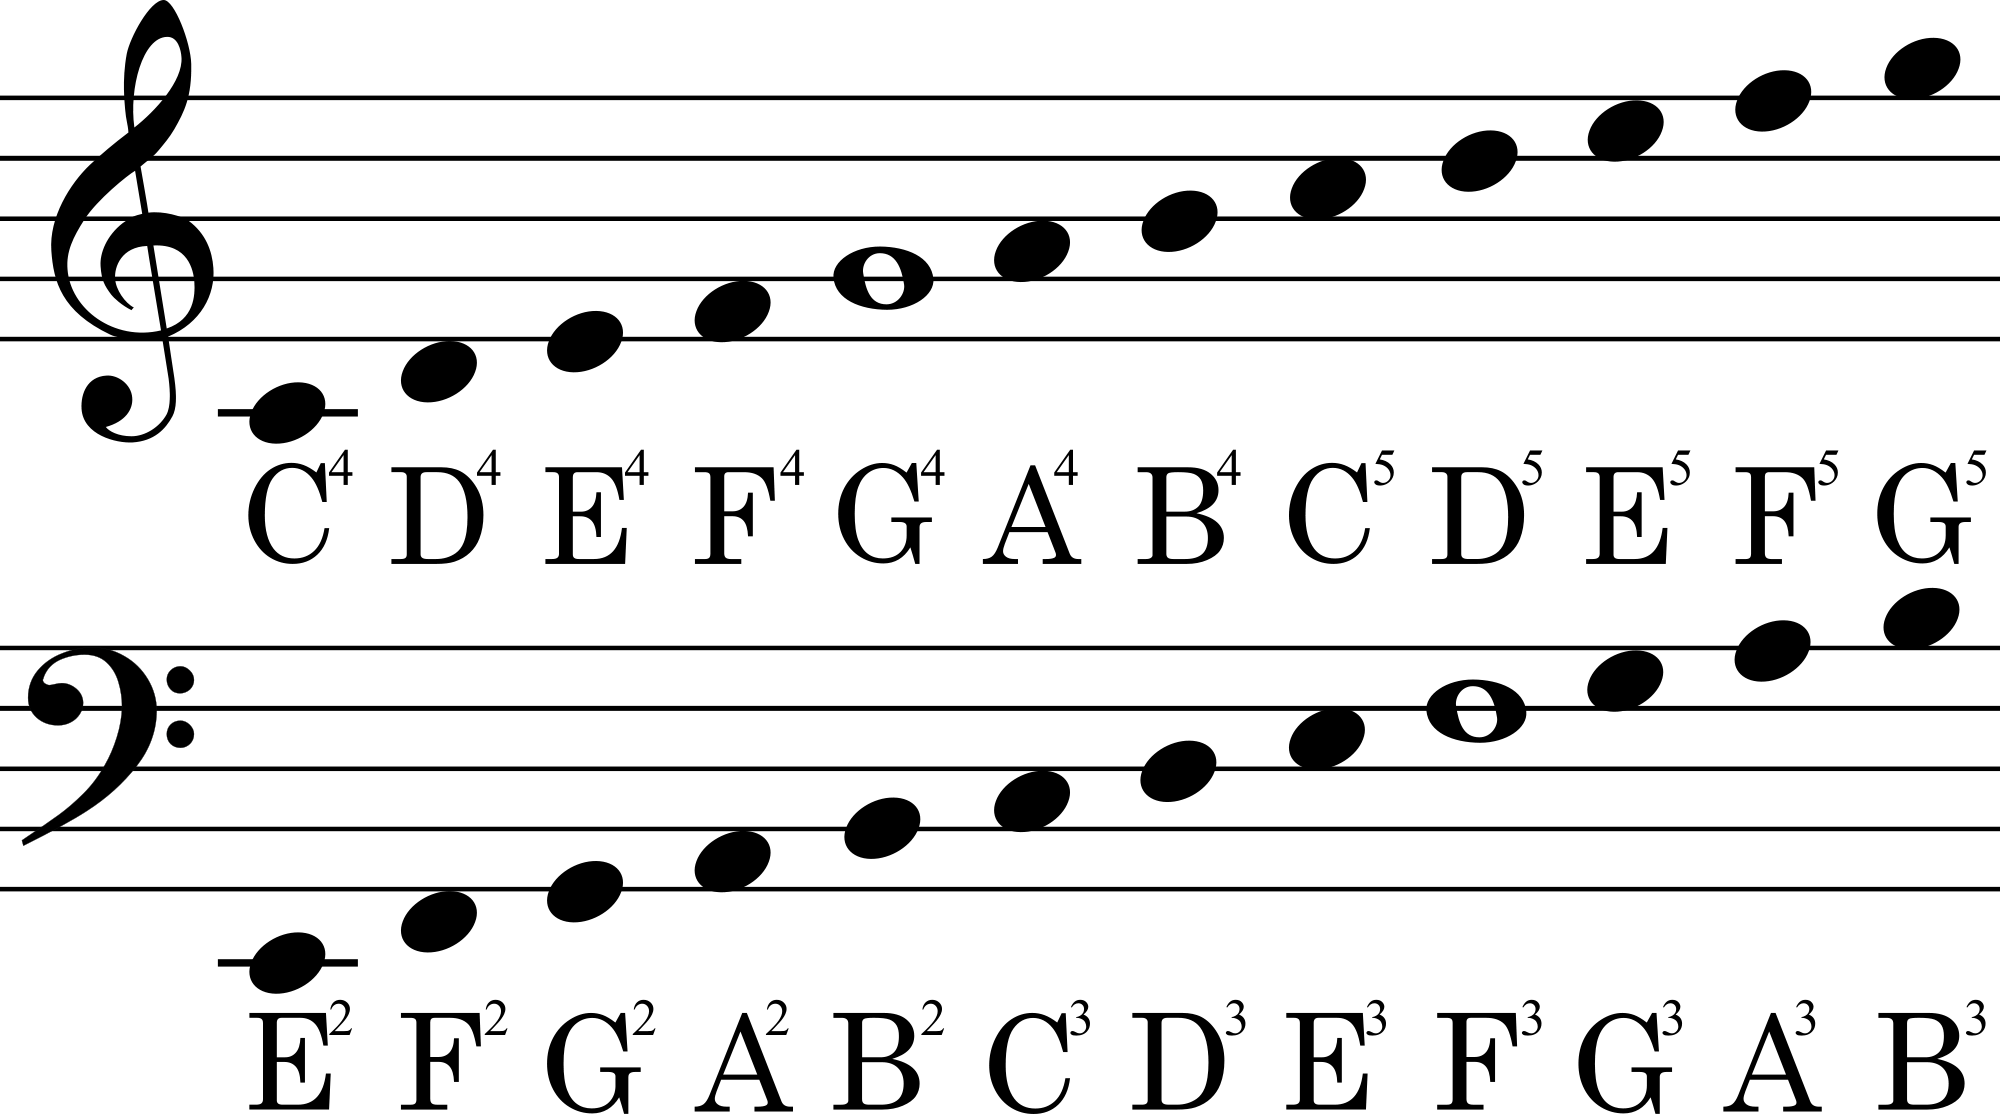 Music Notation Notes Theory Transposing Notes From Piano Notation To Play On